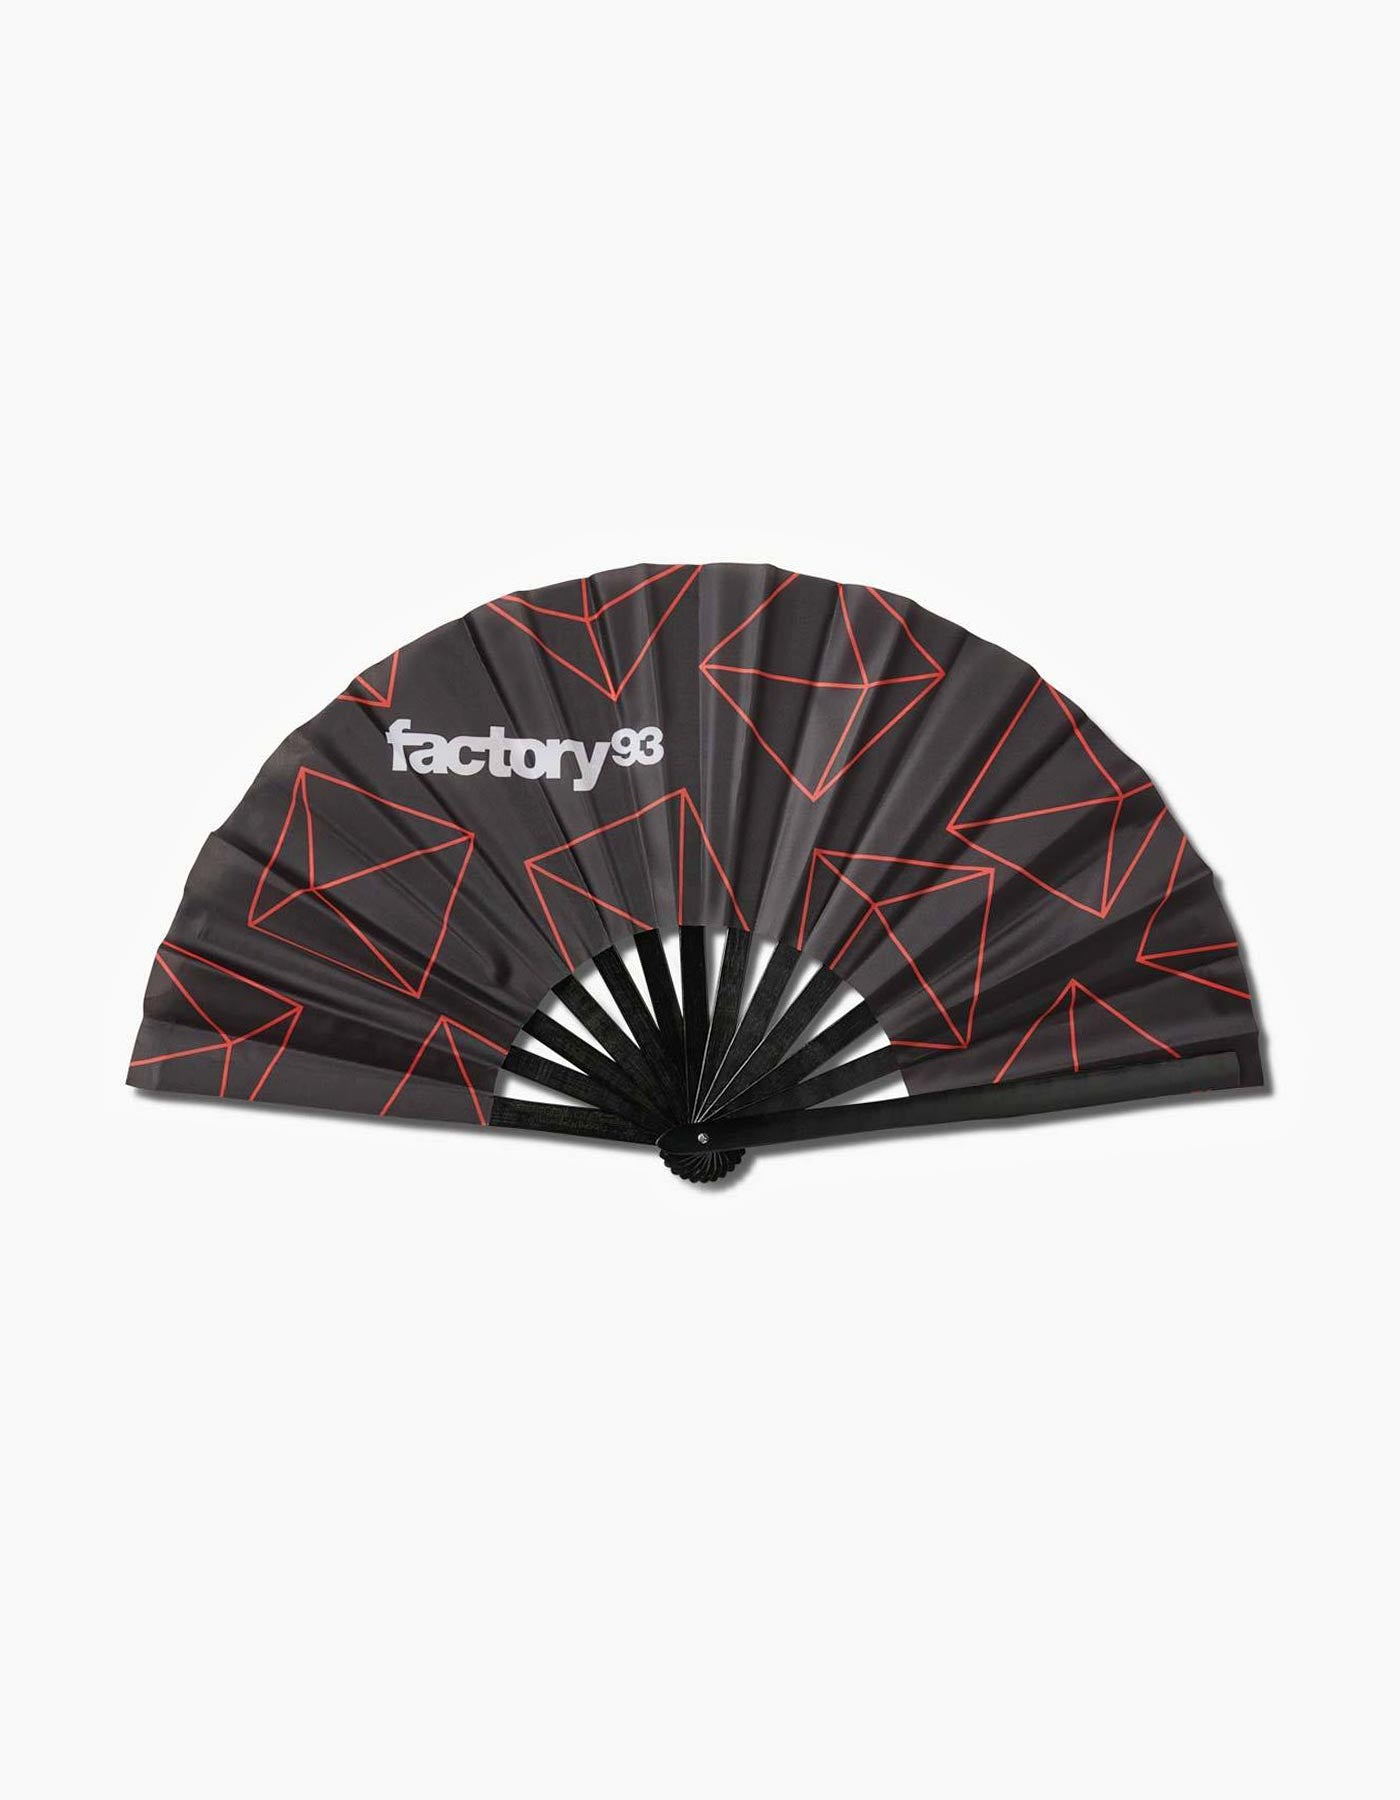 Factory 93 Diamond Fan